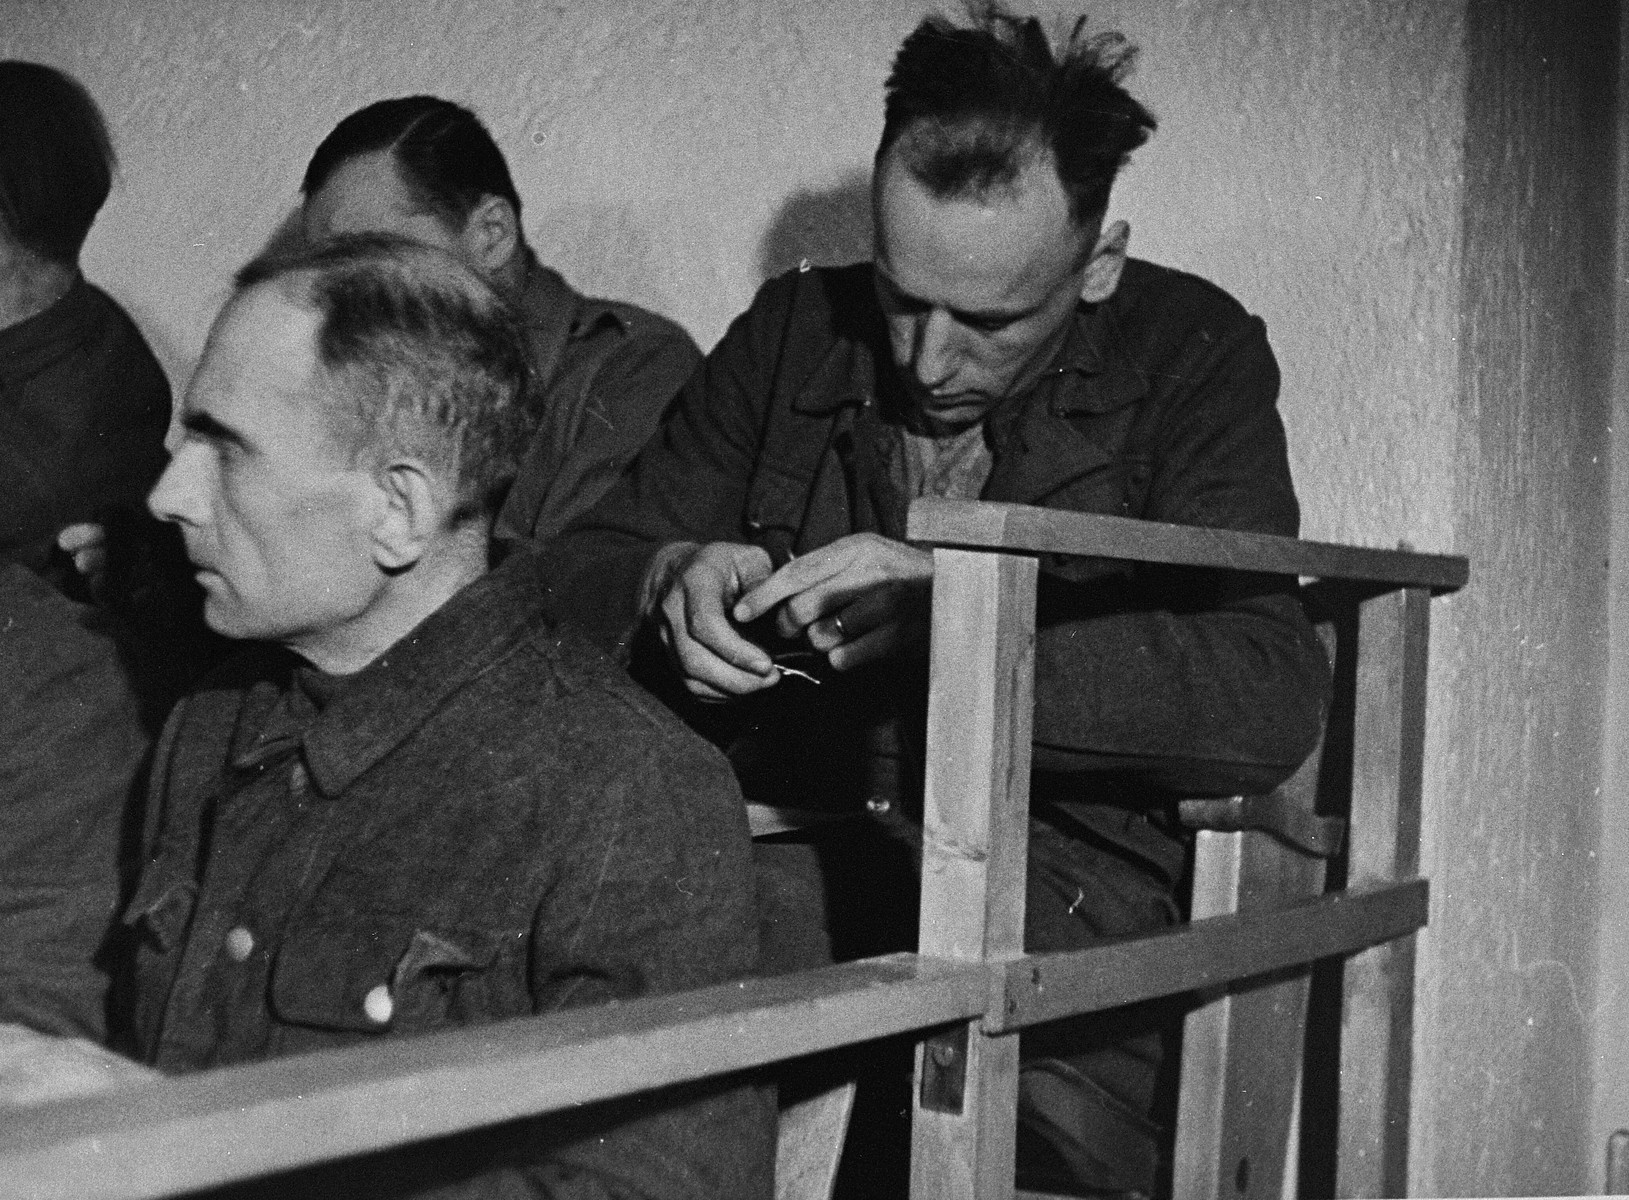 An unidentified defendant at the trial of 61 former camp personnel and prisoners from Mauthausen, sits in his place in the defendants' dock.